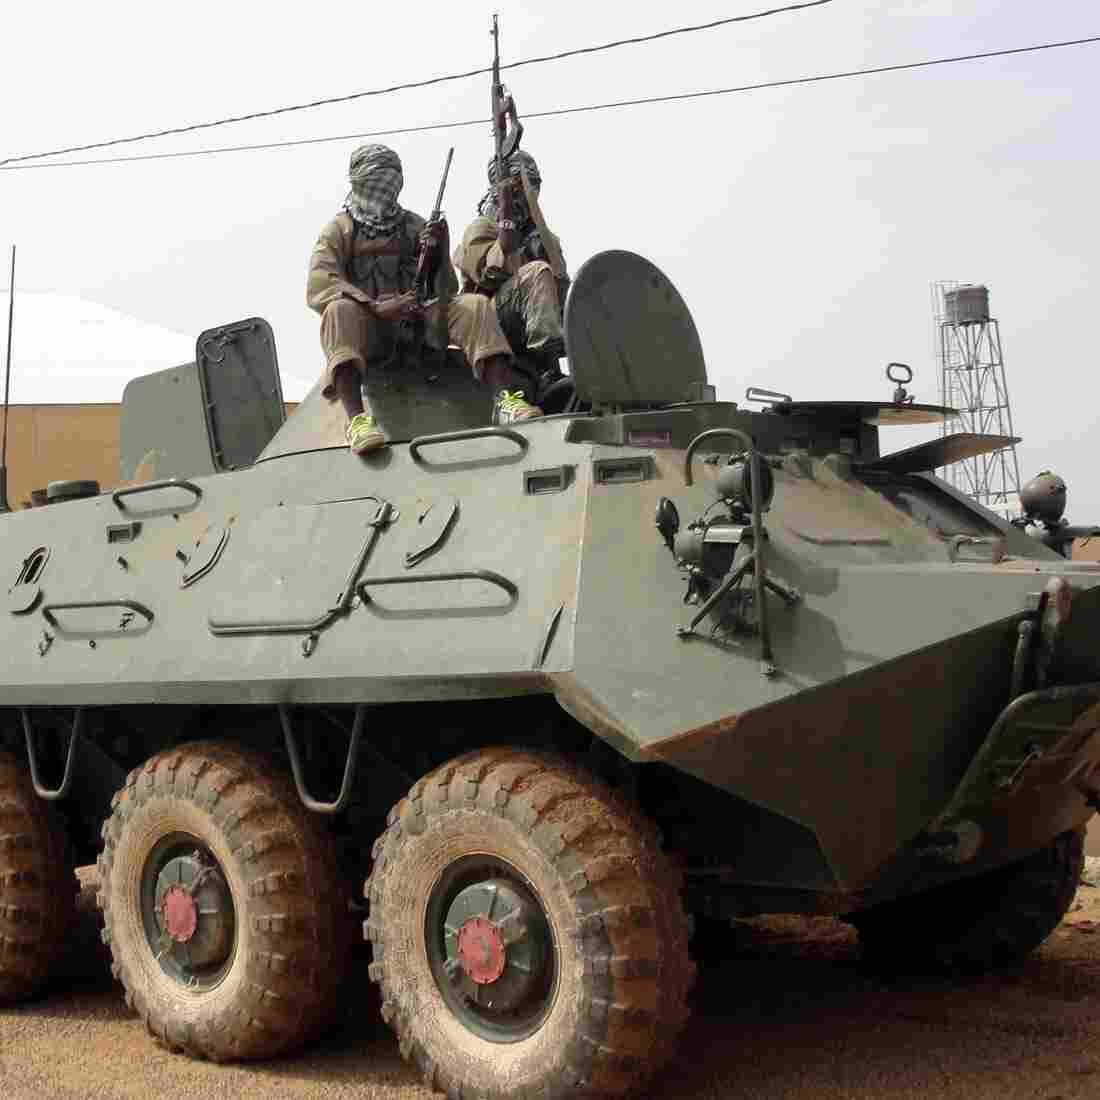 Fighters of the Islamist group, the Movement for Oneness and Jihad in West Africa guard a tank abandoned by the Malian army on Aug. 7.